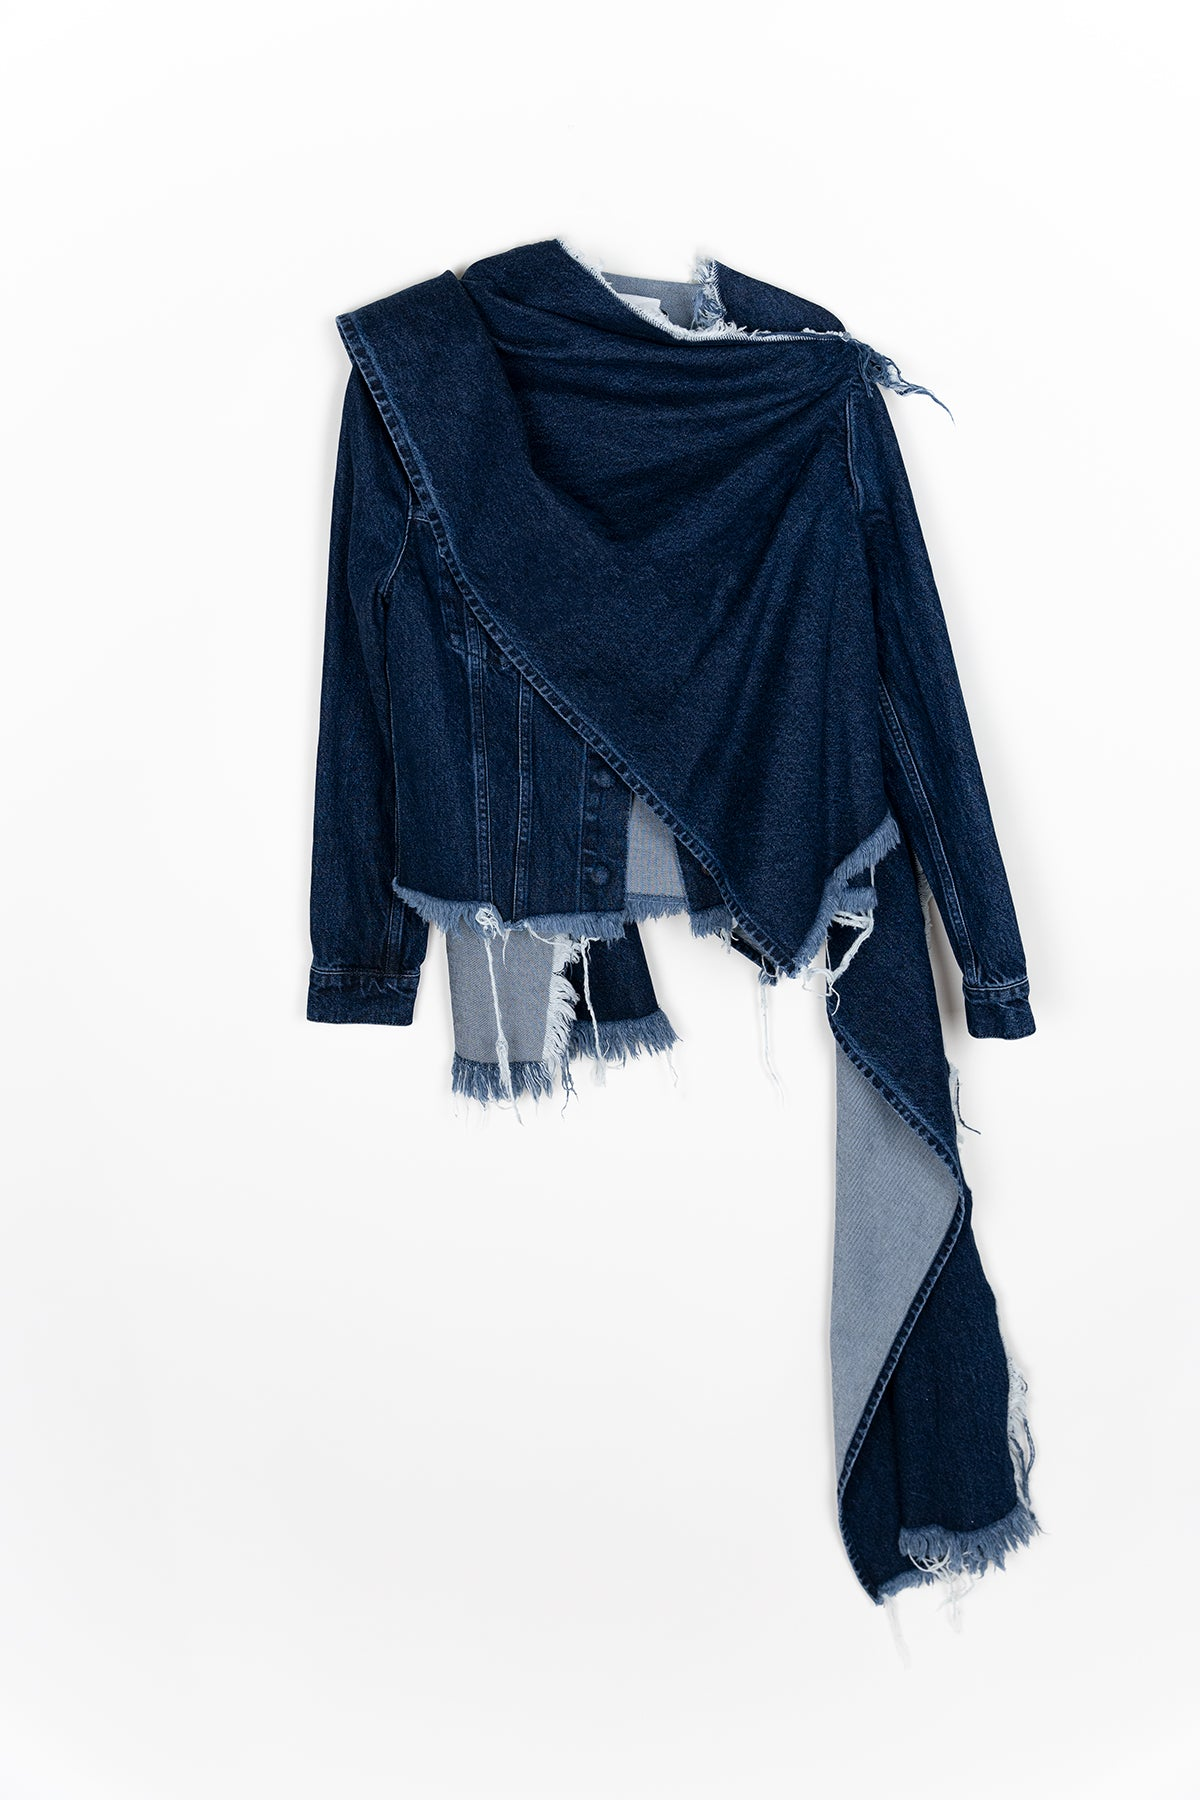 INDIGO DENIM SCARF JACKET